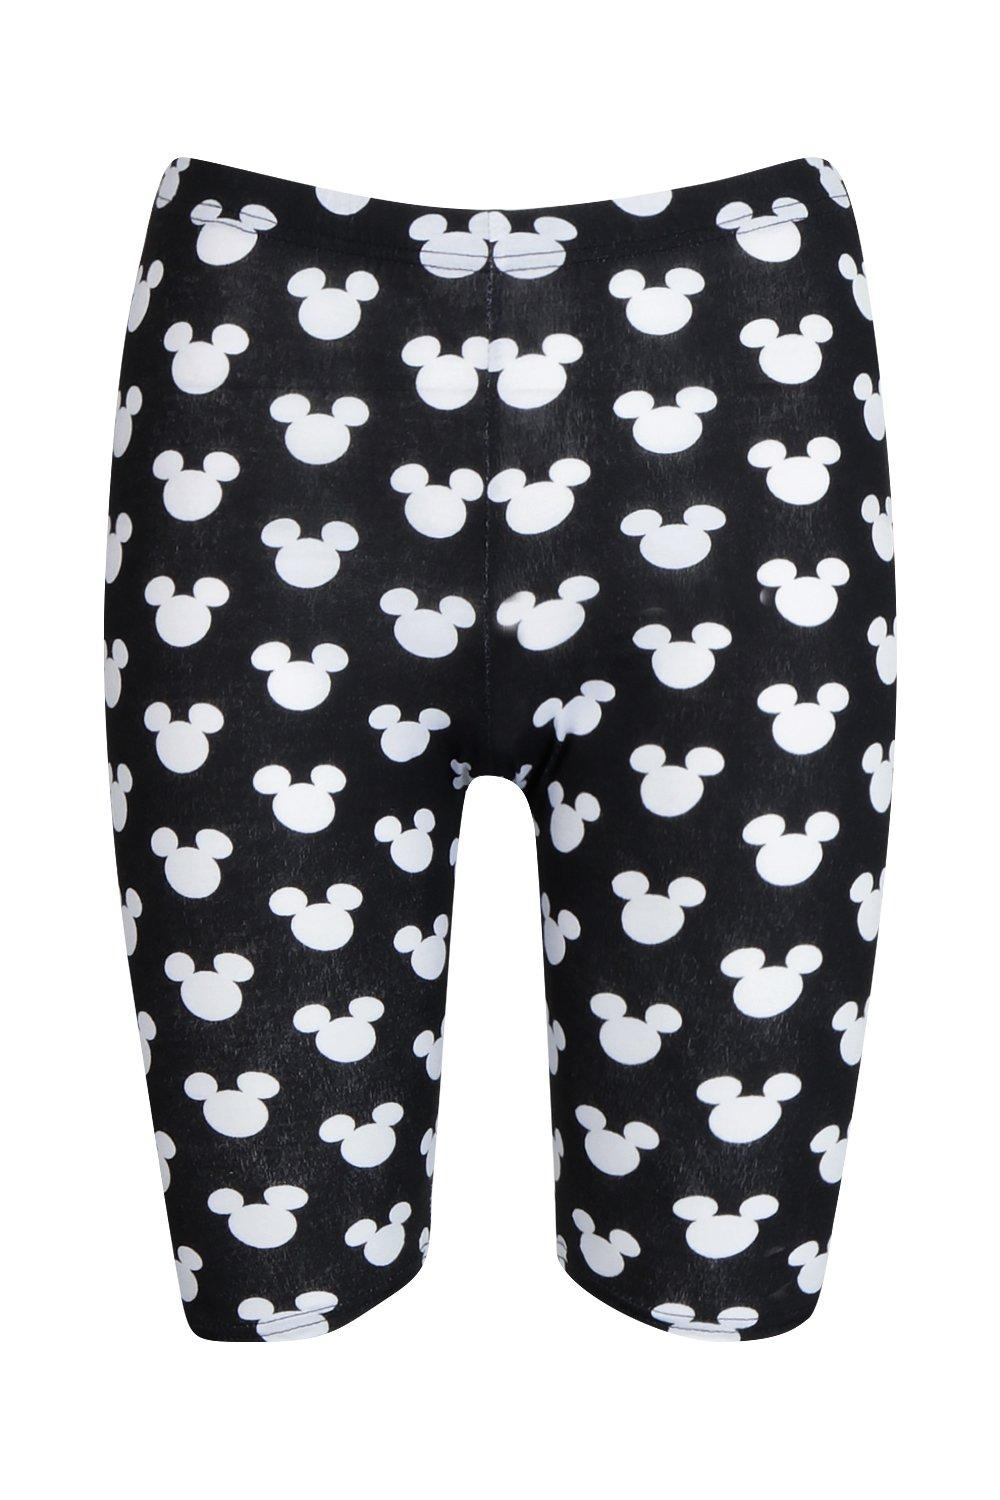 black Repeat Disney Short Cycling Mickey qIq4wZ5T